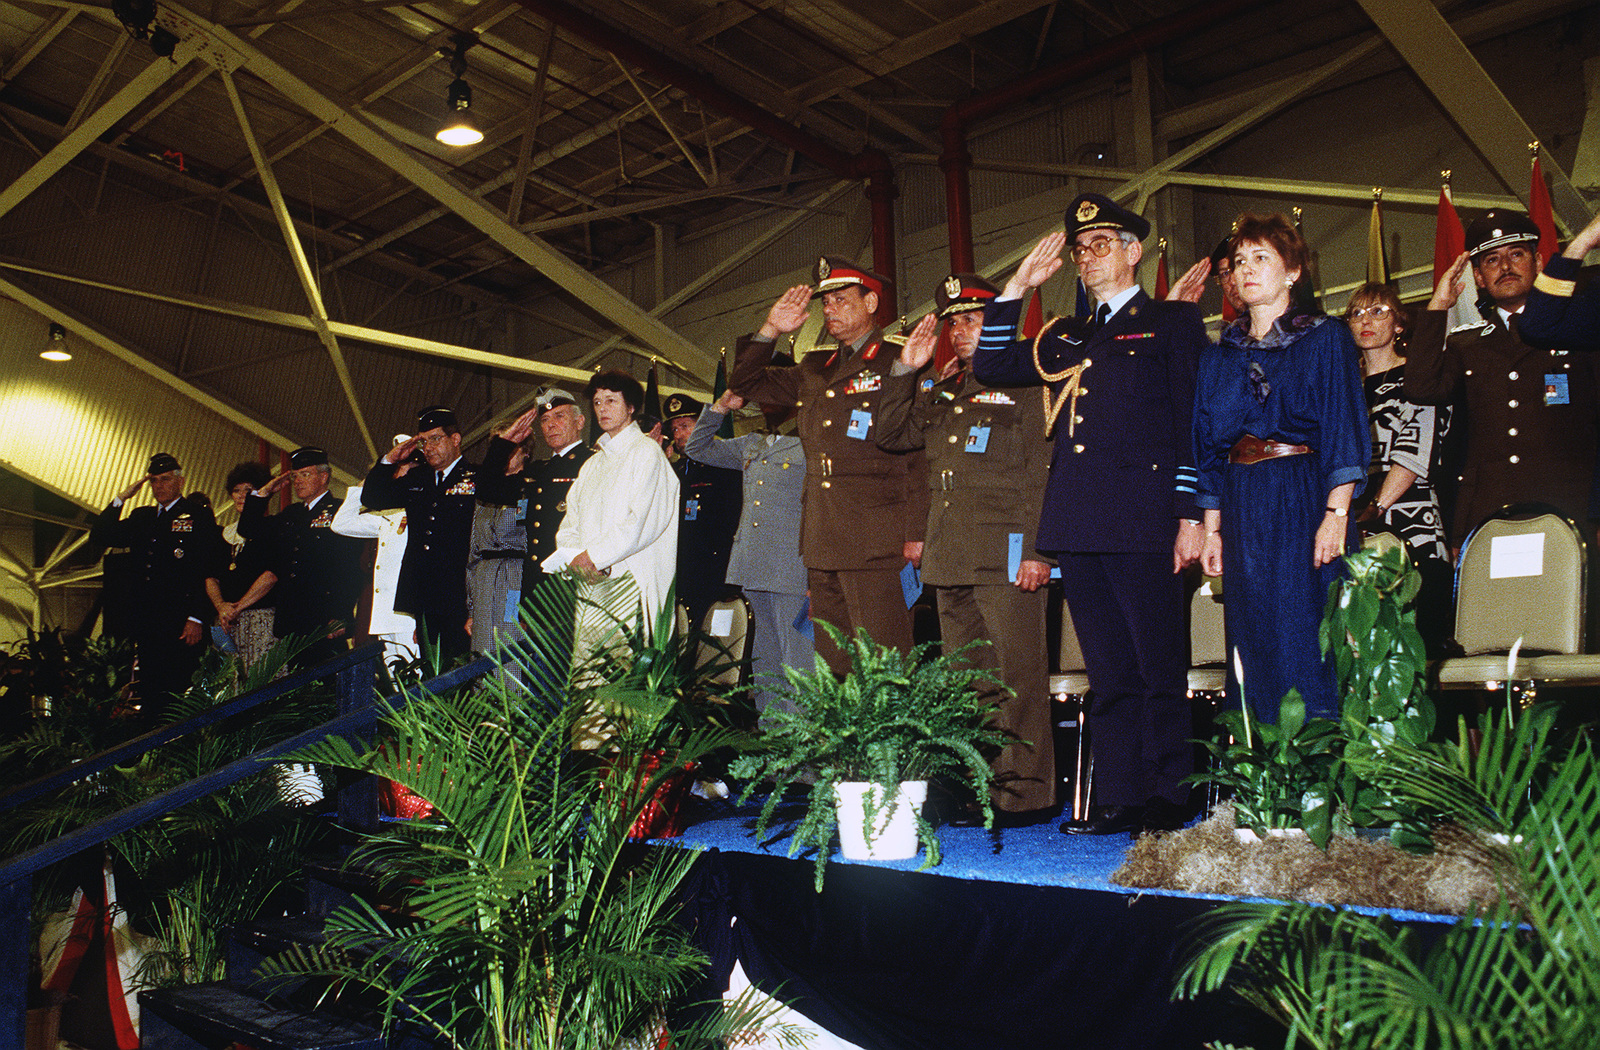 Honored guests render a salute during the closing ceremony of the 1988 Conseil International Du Sport Militaire's Cross Country Championship (CISM)